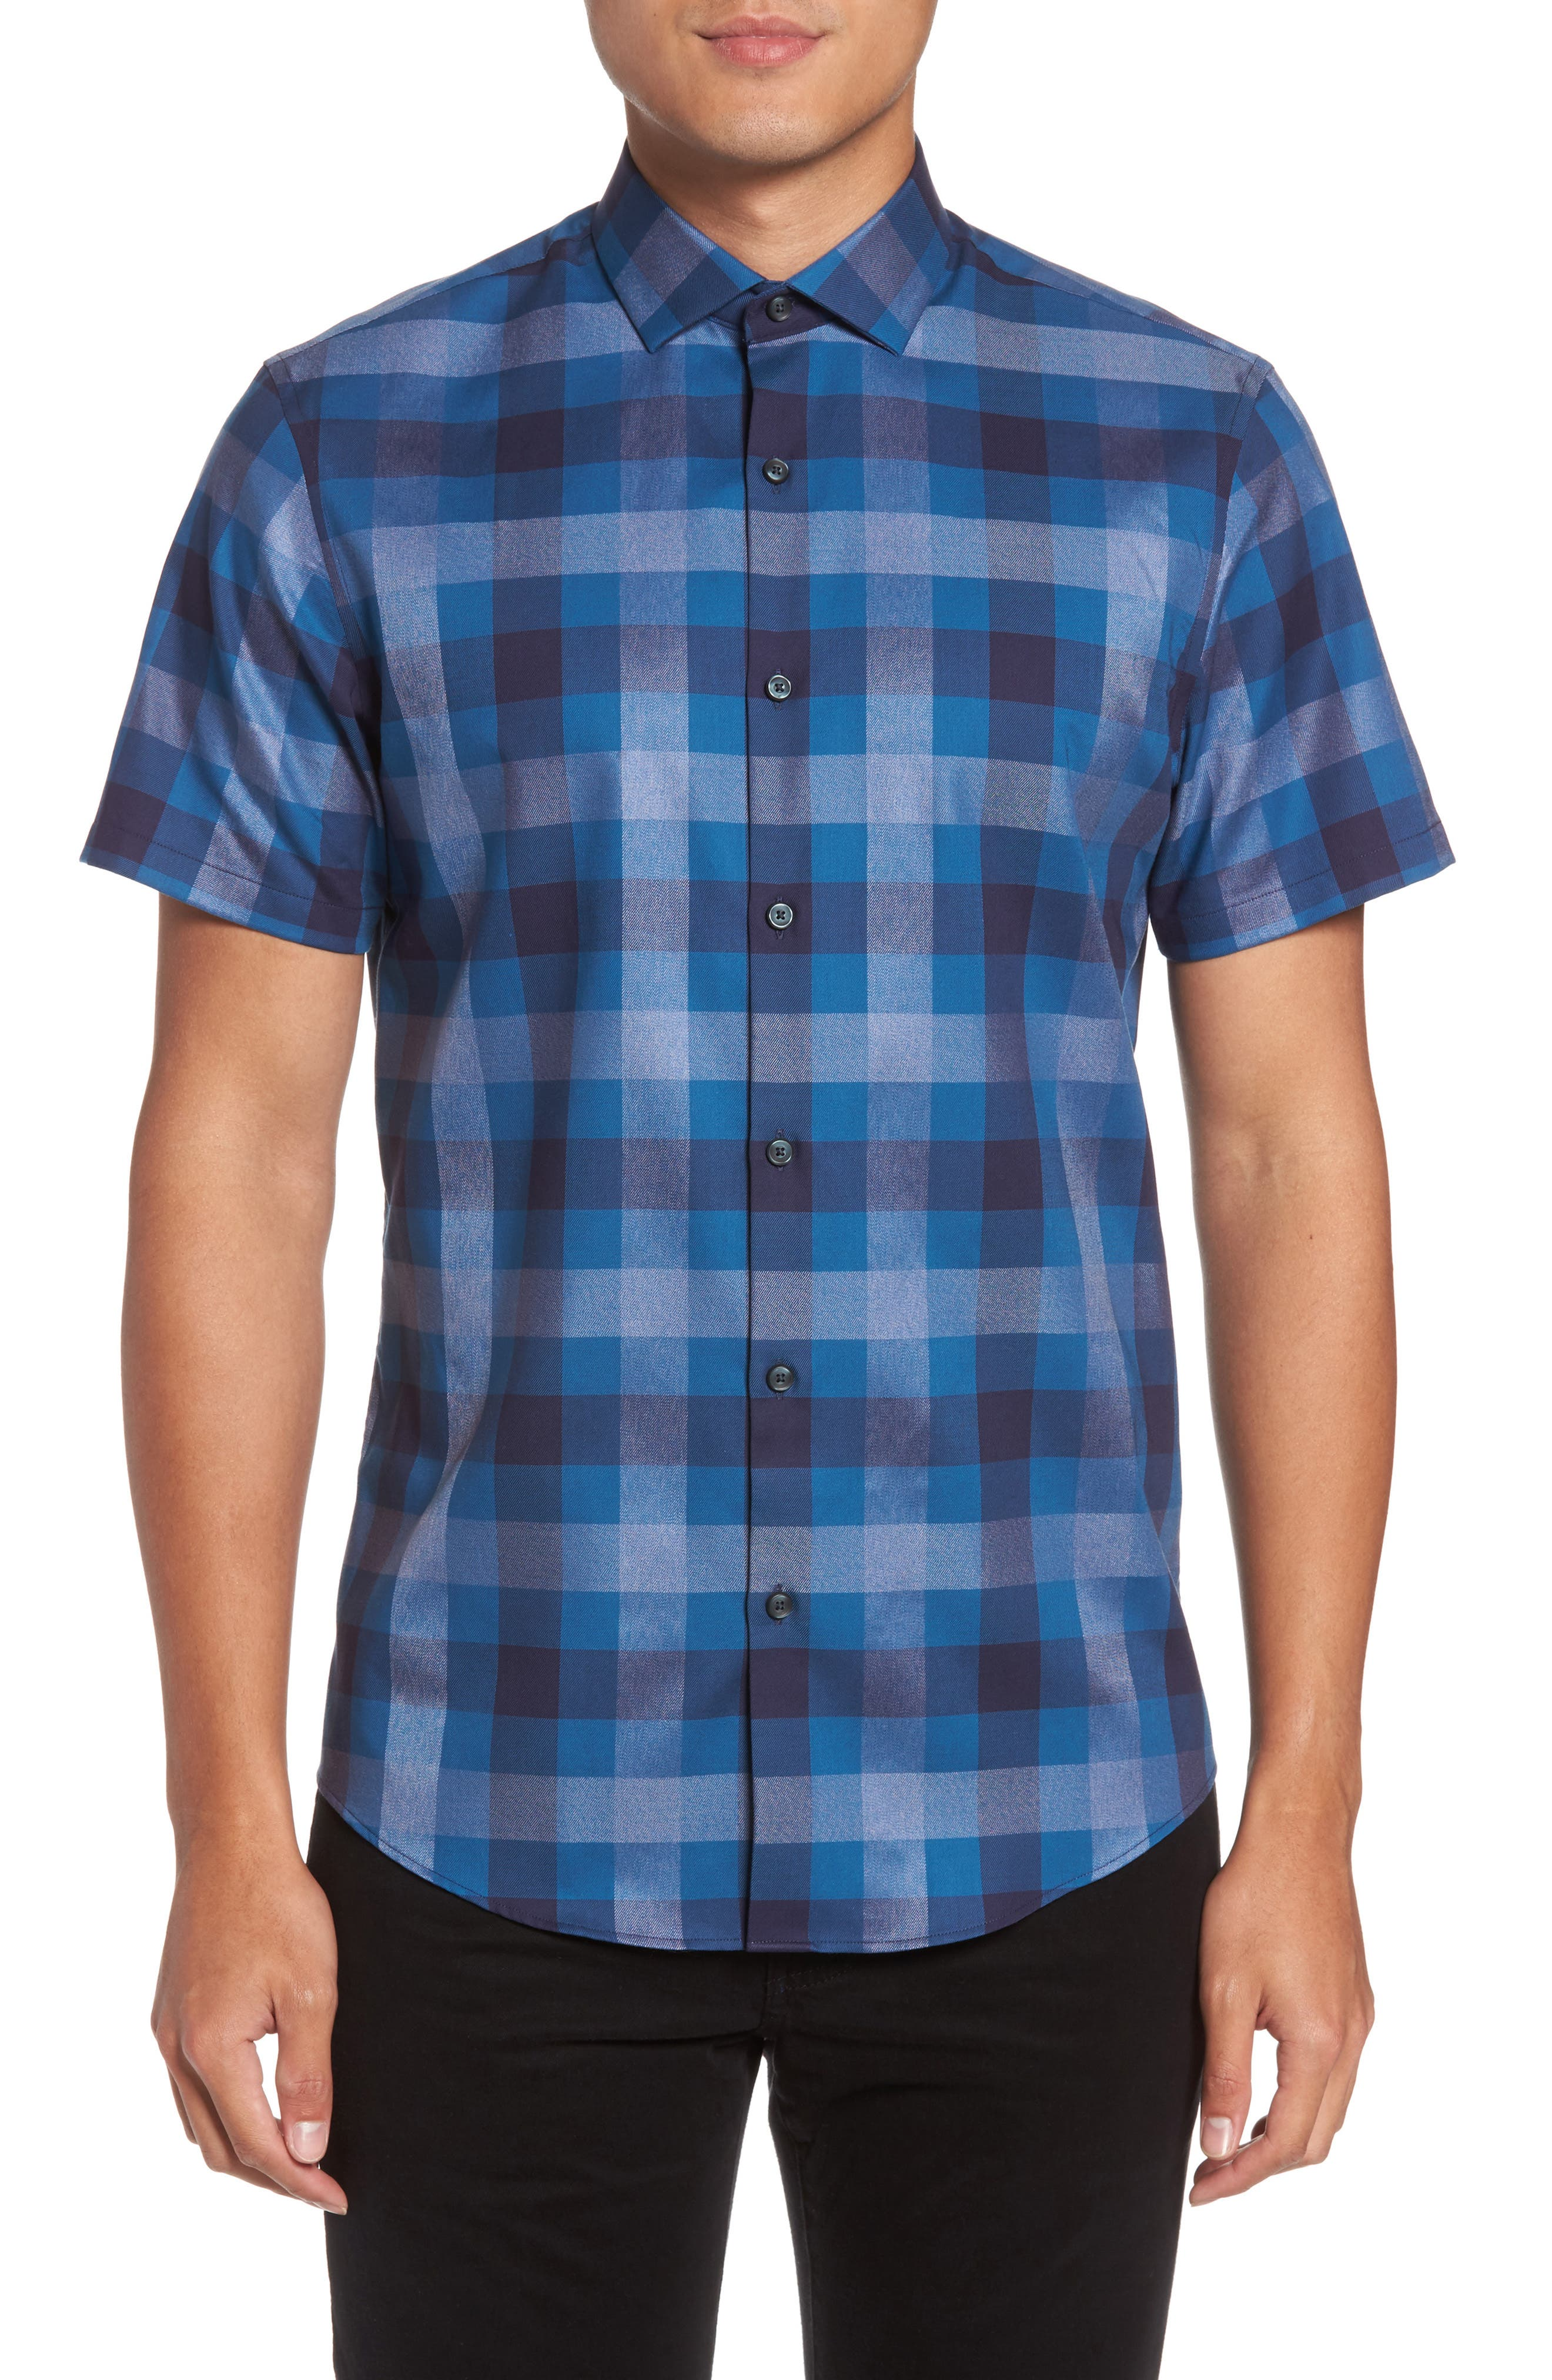 Alternate Image 1 Selected - Calibrate No-Iron Large Check Woven Shirt